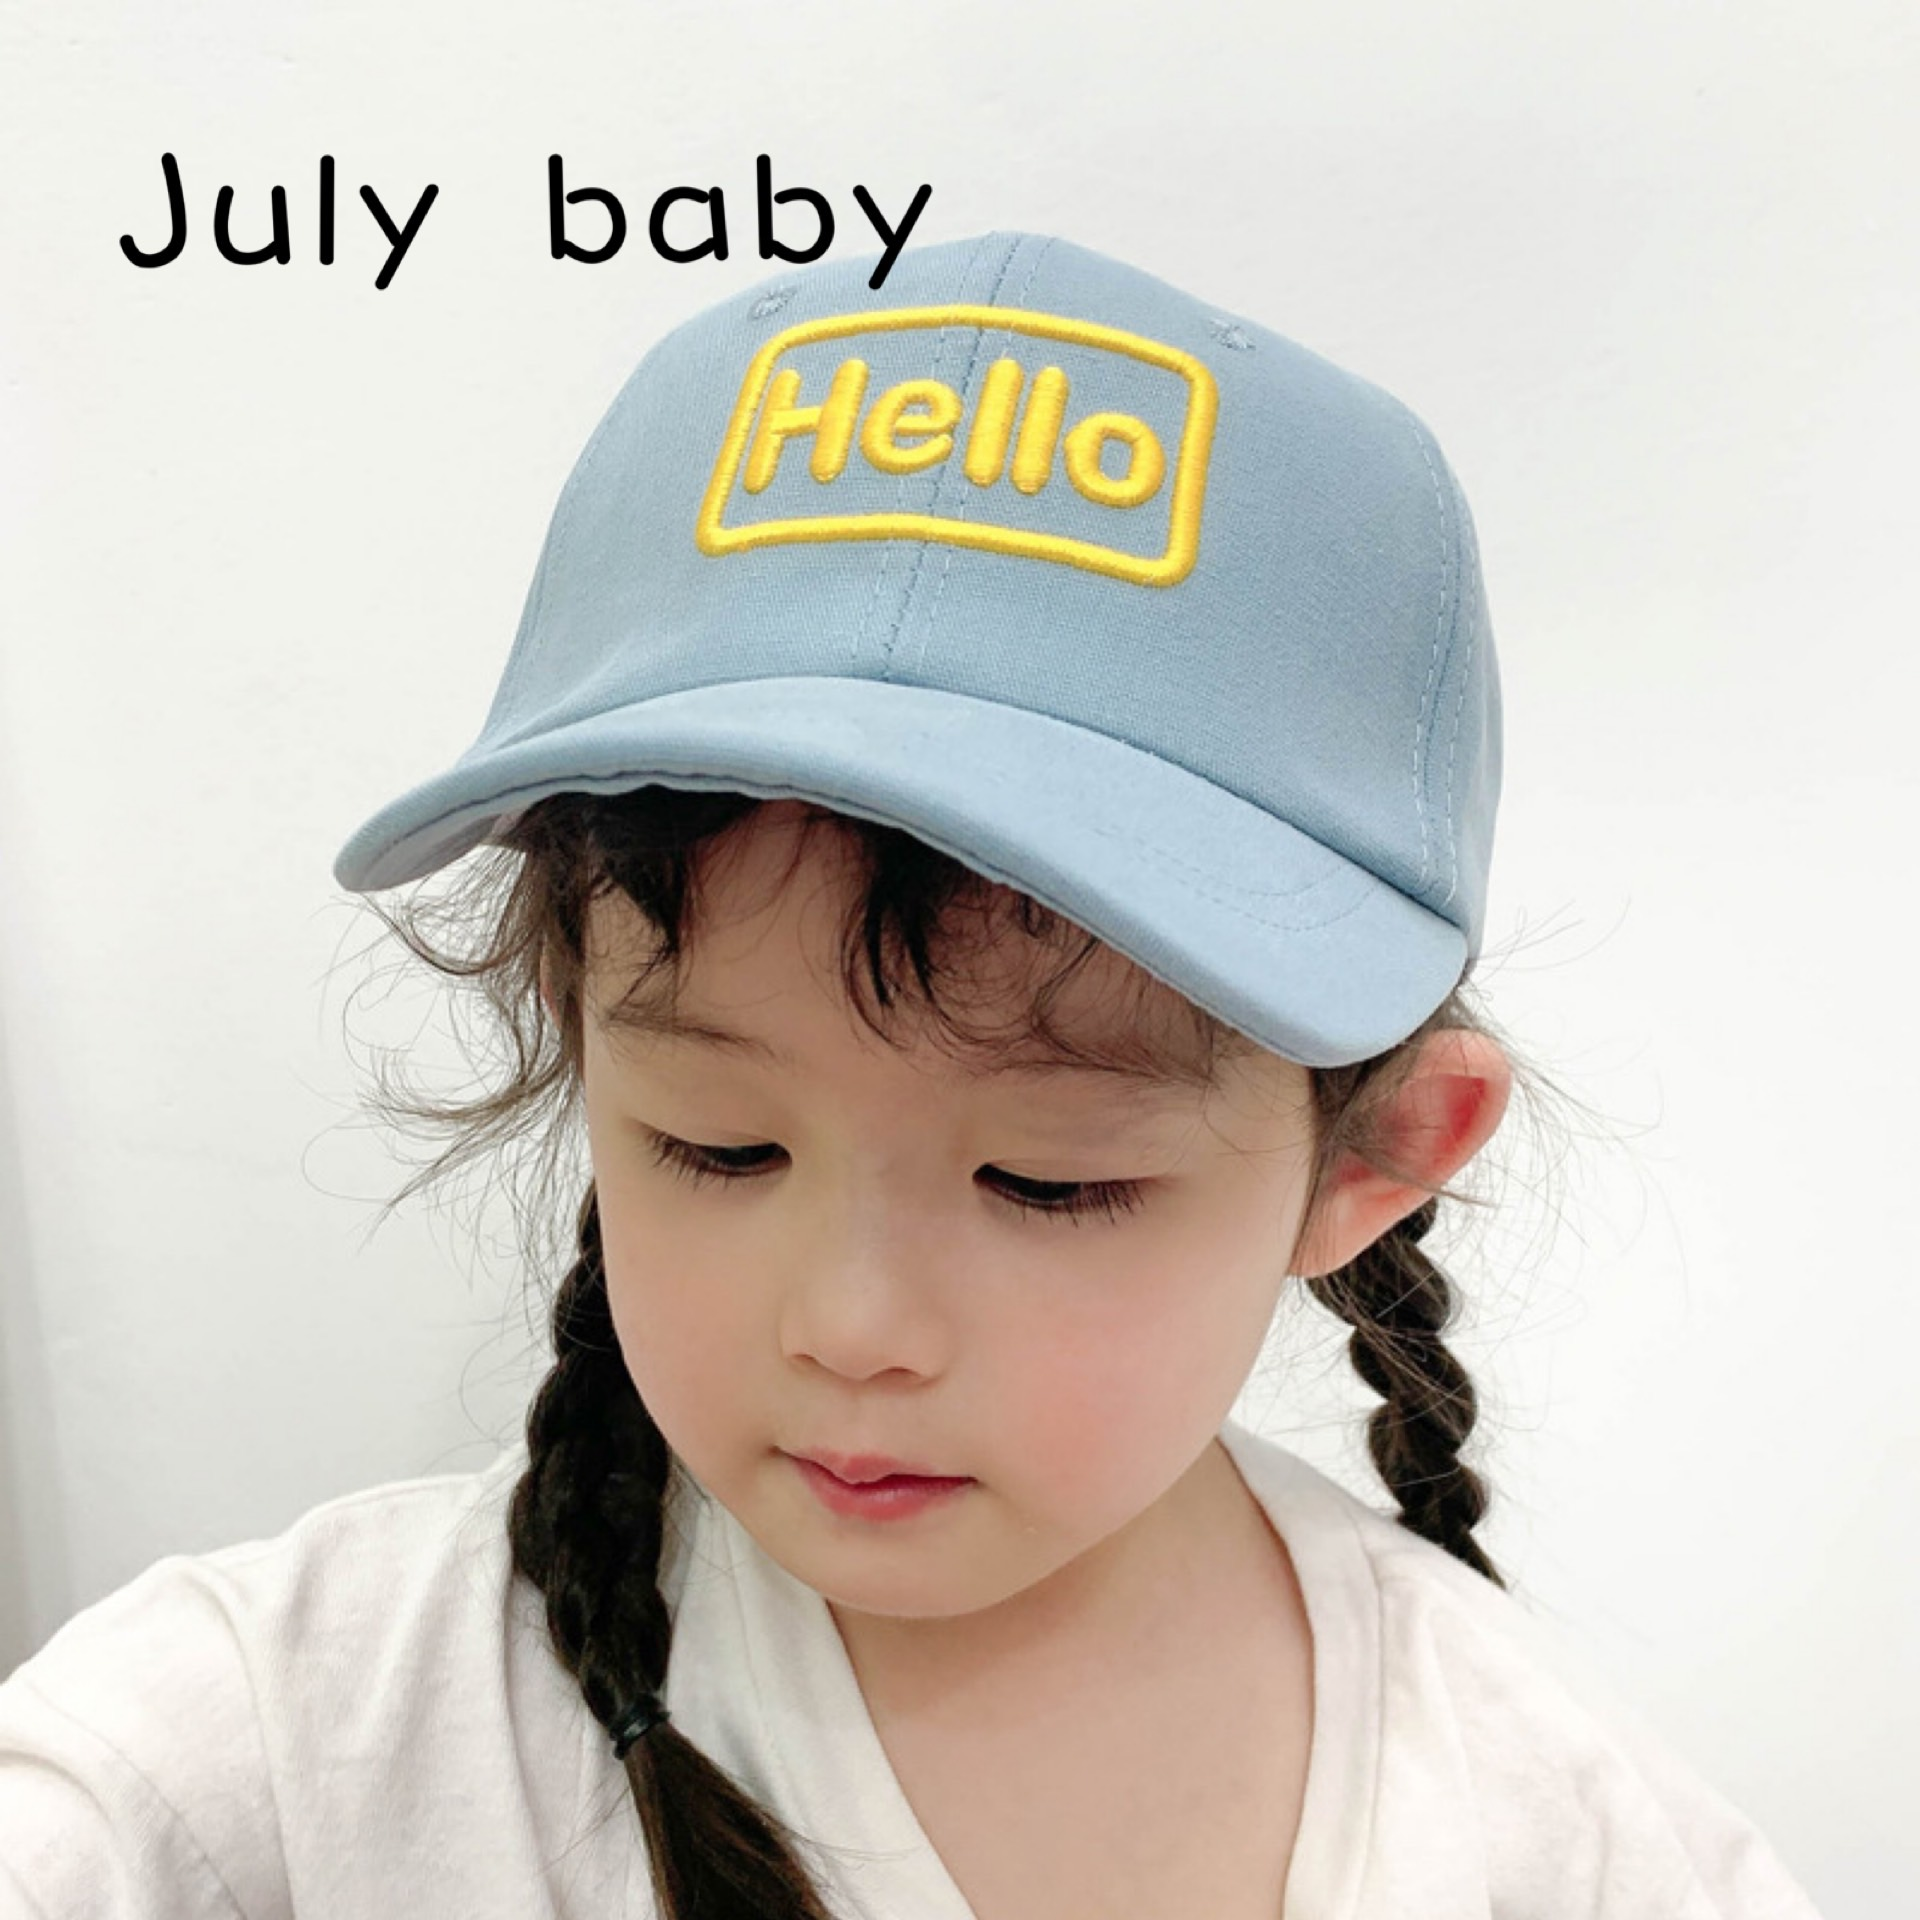 July Baby 2020 Spring And Summer New Children's Hat Baseball Cap Sun Hat Embroidery Sunscreen Girl Cute Letter Cap